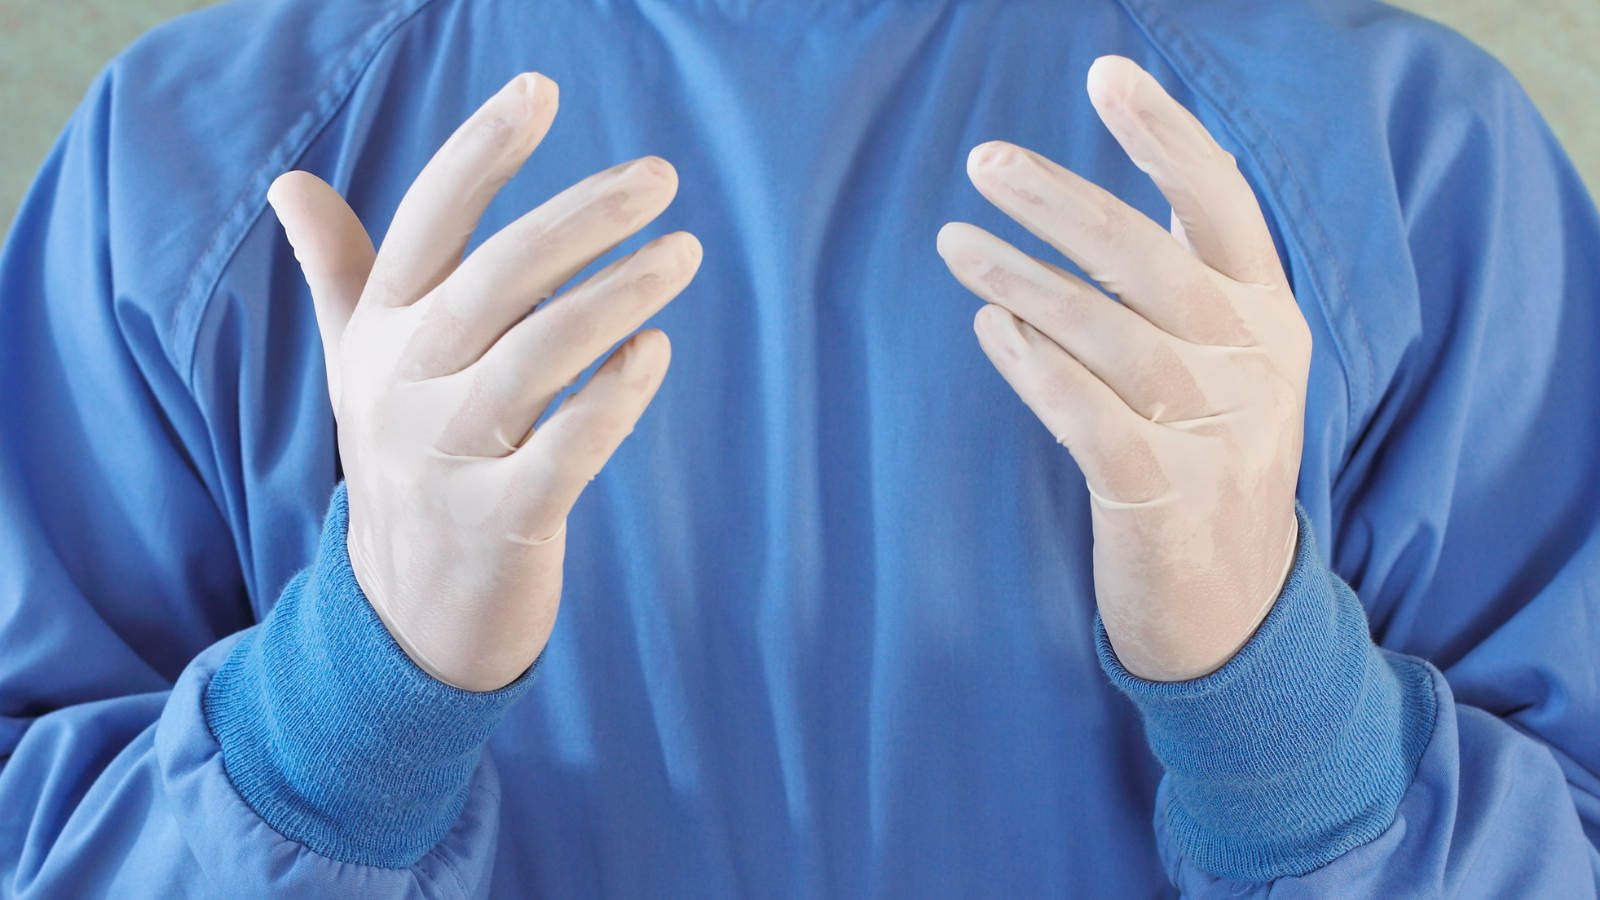 Gloves help protect employee's and customers' skin from dangerous germs and harmful chemicals. This is why they are an important cleaning tool.